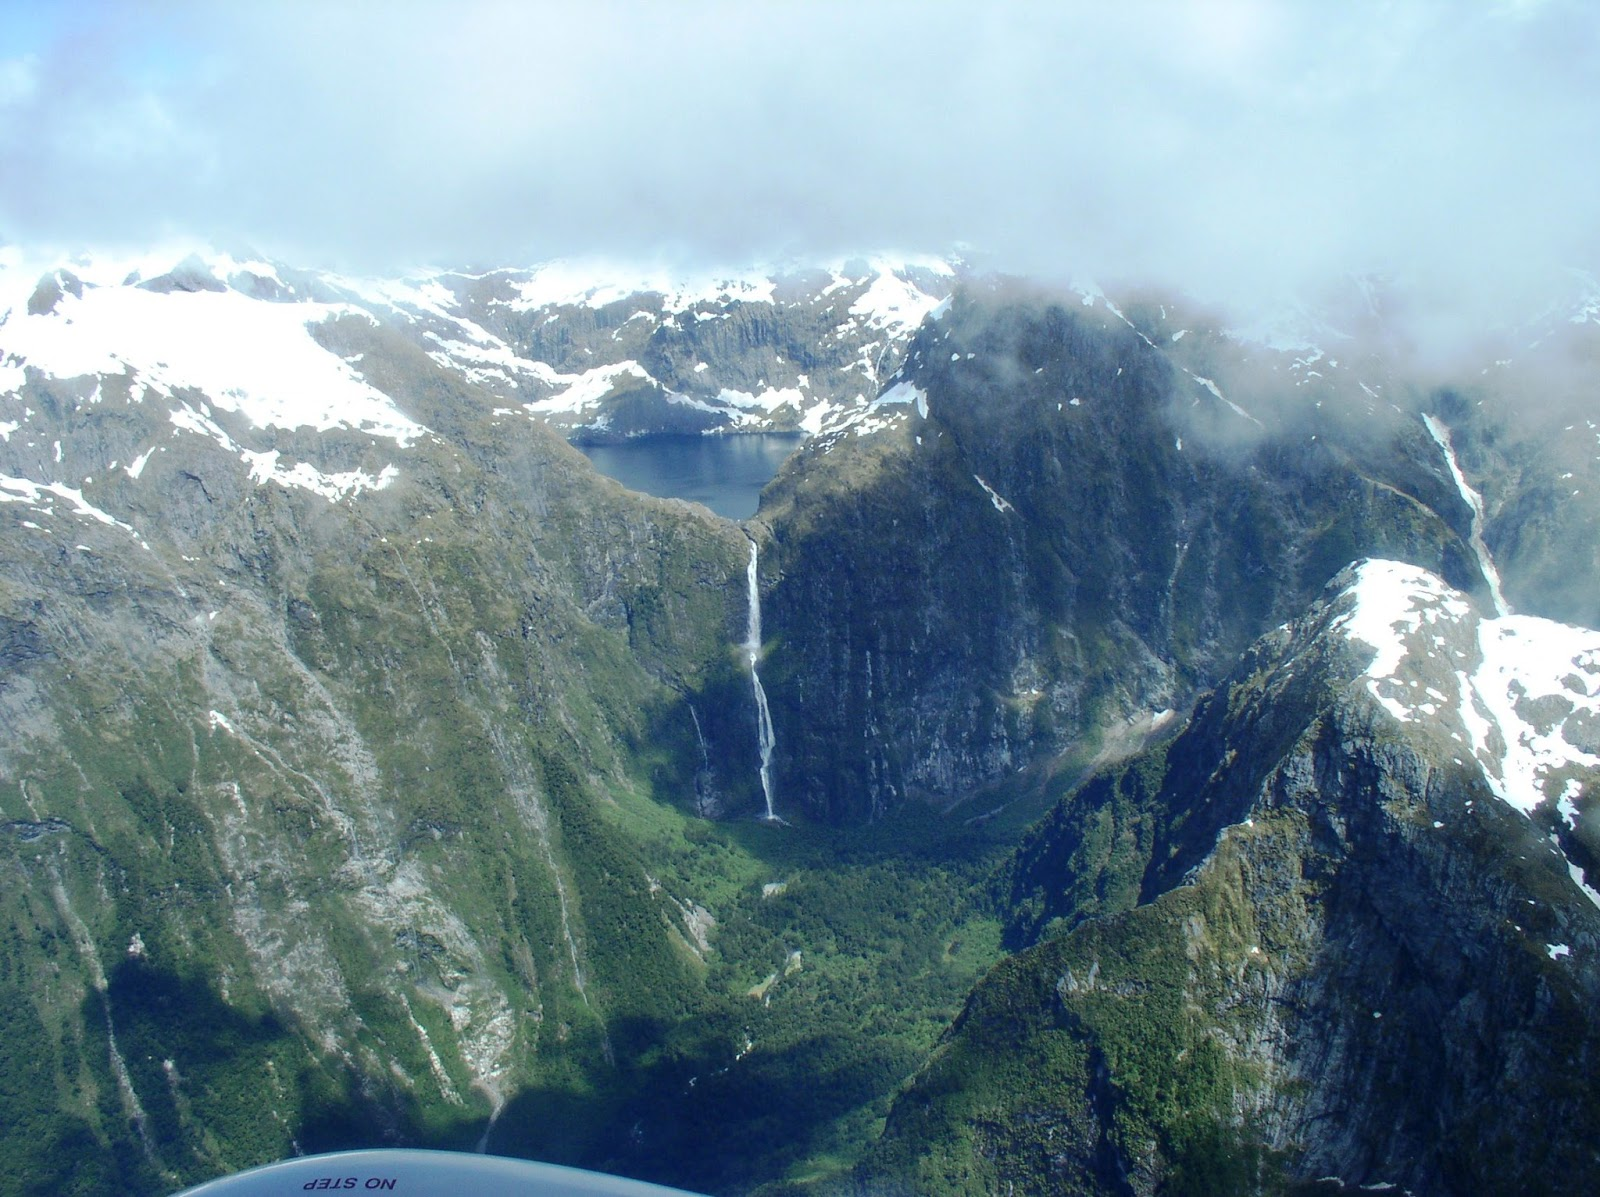 Lake-Quill-Sutherland-Falls-New-Zealand-9